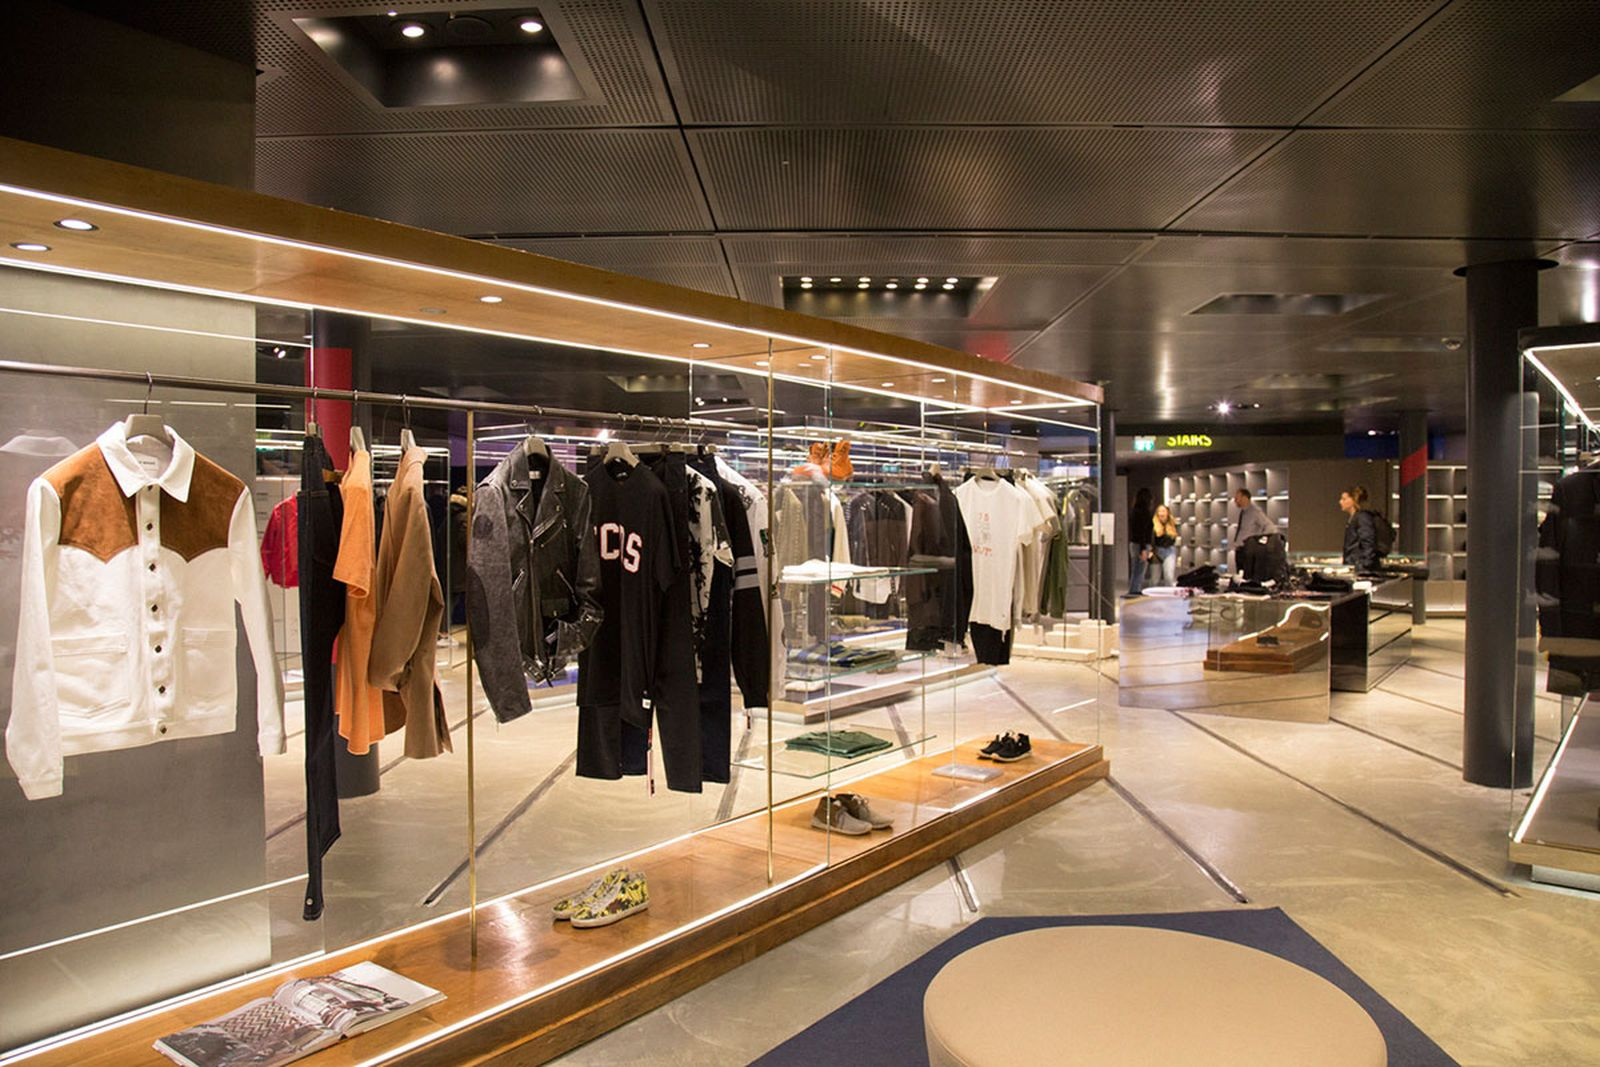 milan-shopping-guide-excelsior-2